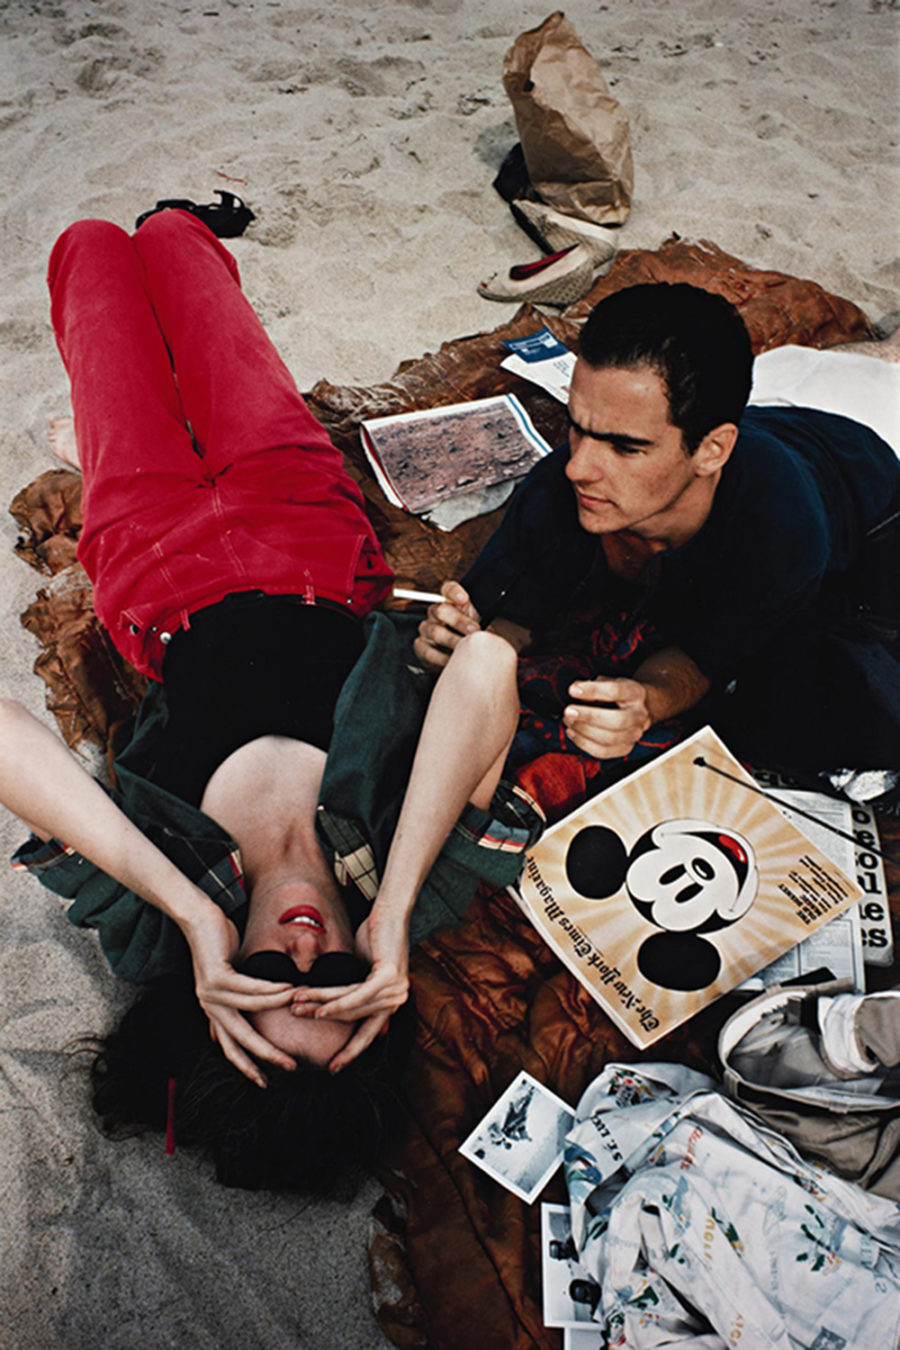 Nan Goldin, C.Z. and Max on the Beach, 1976